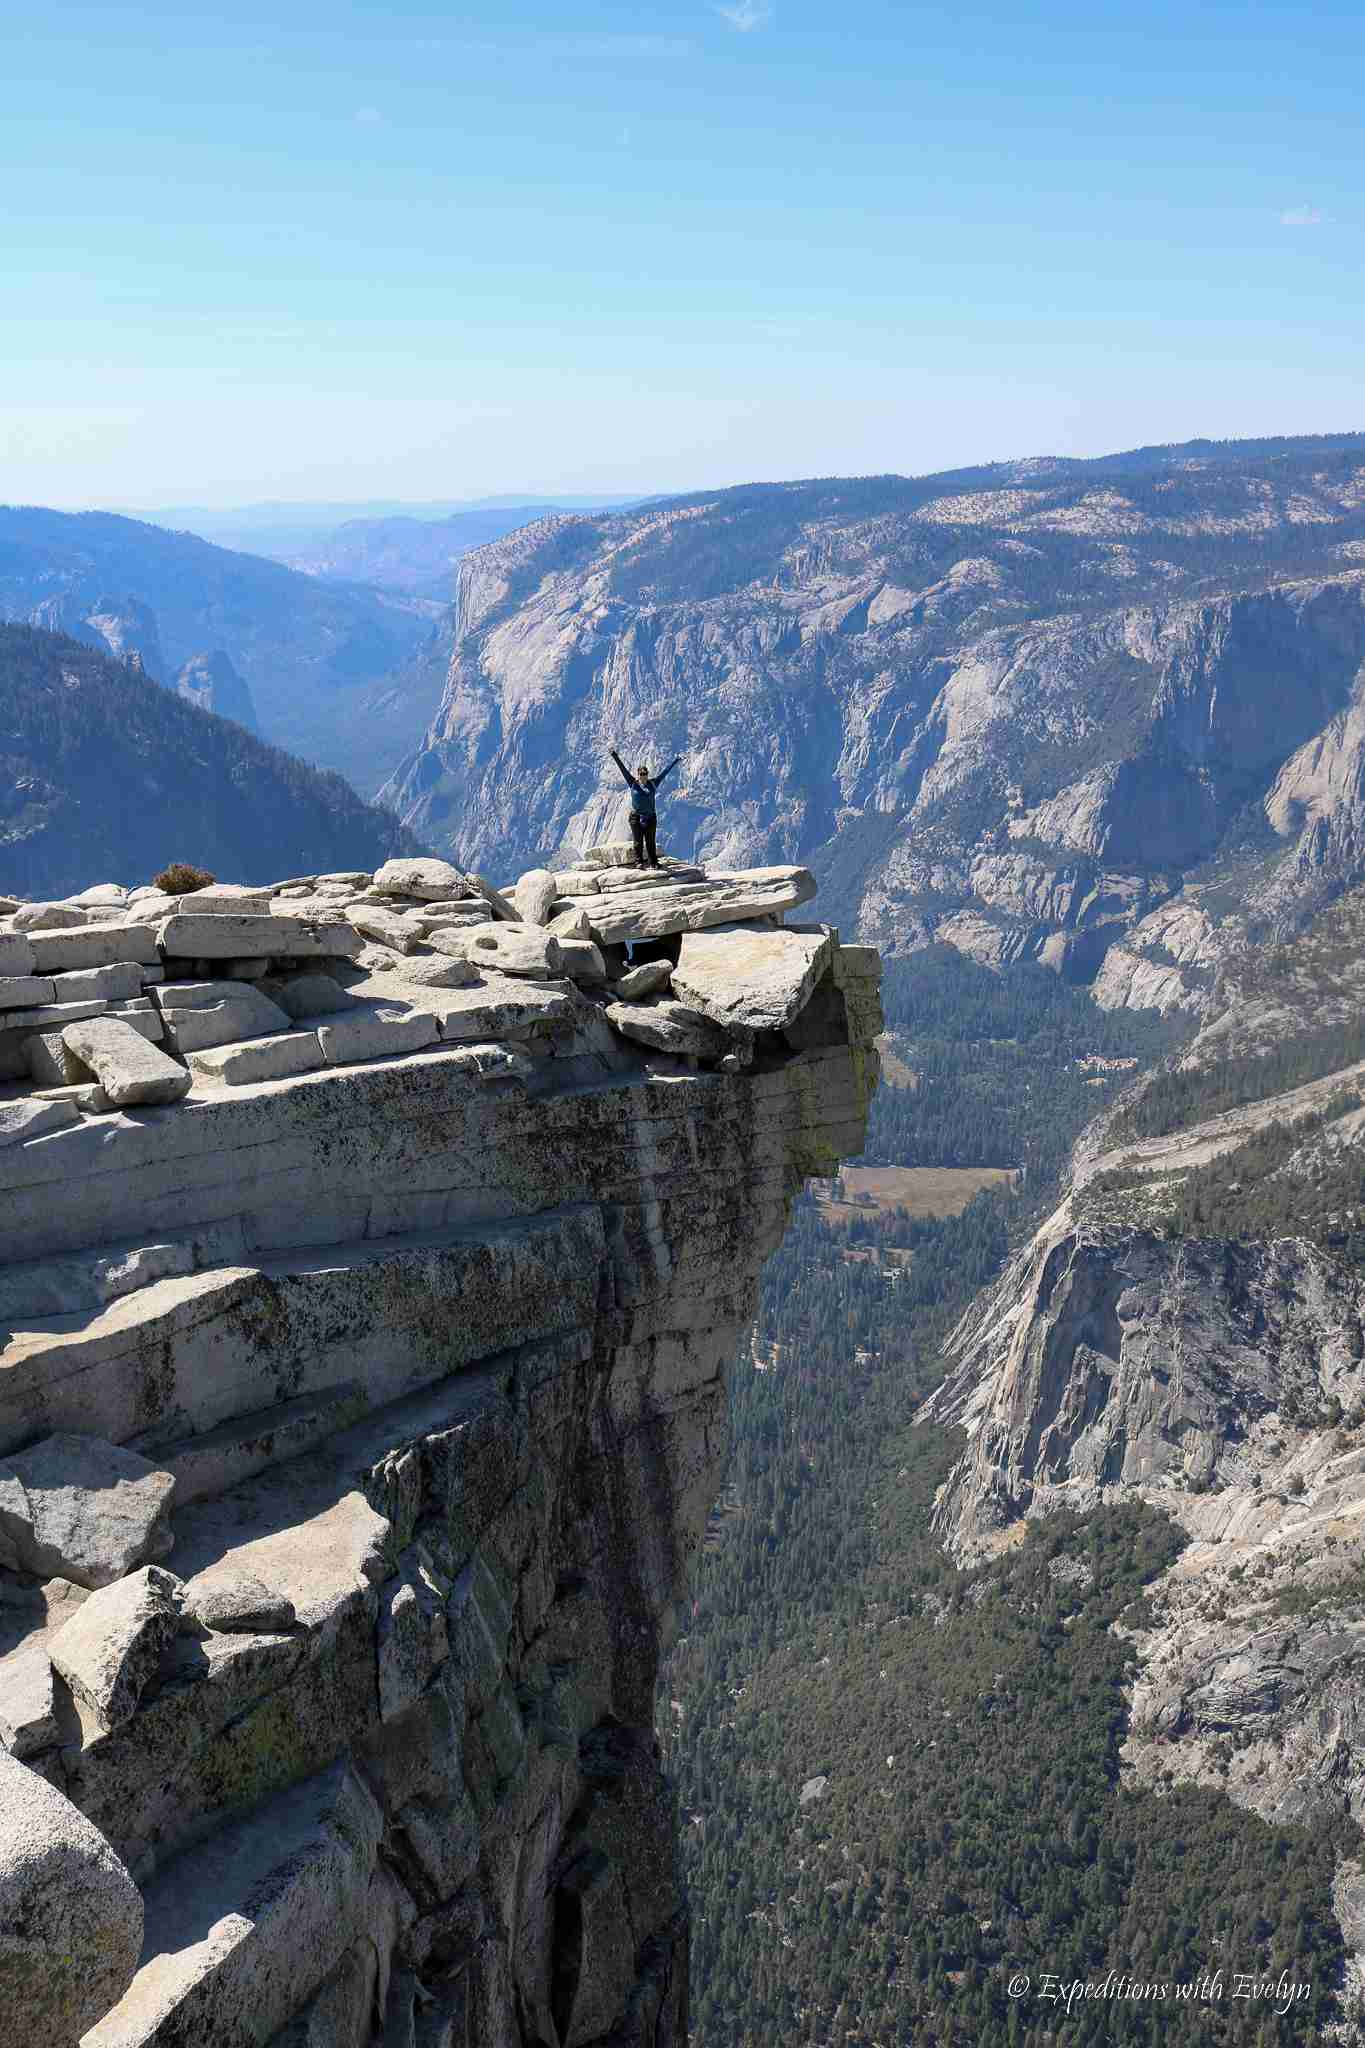 A hiker stands on top of the granite summit of Half Dome after completing one of the best hikes in the world.